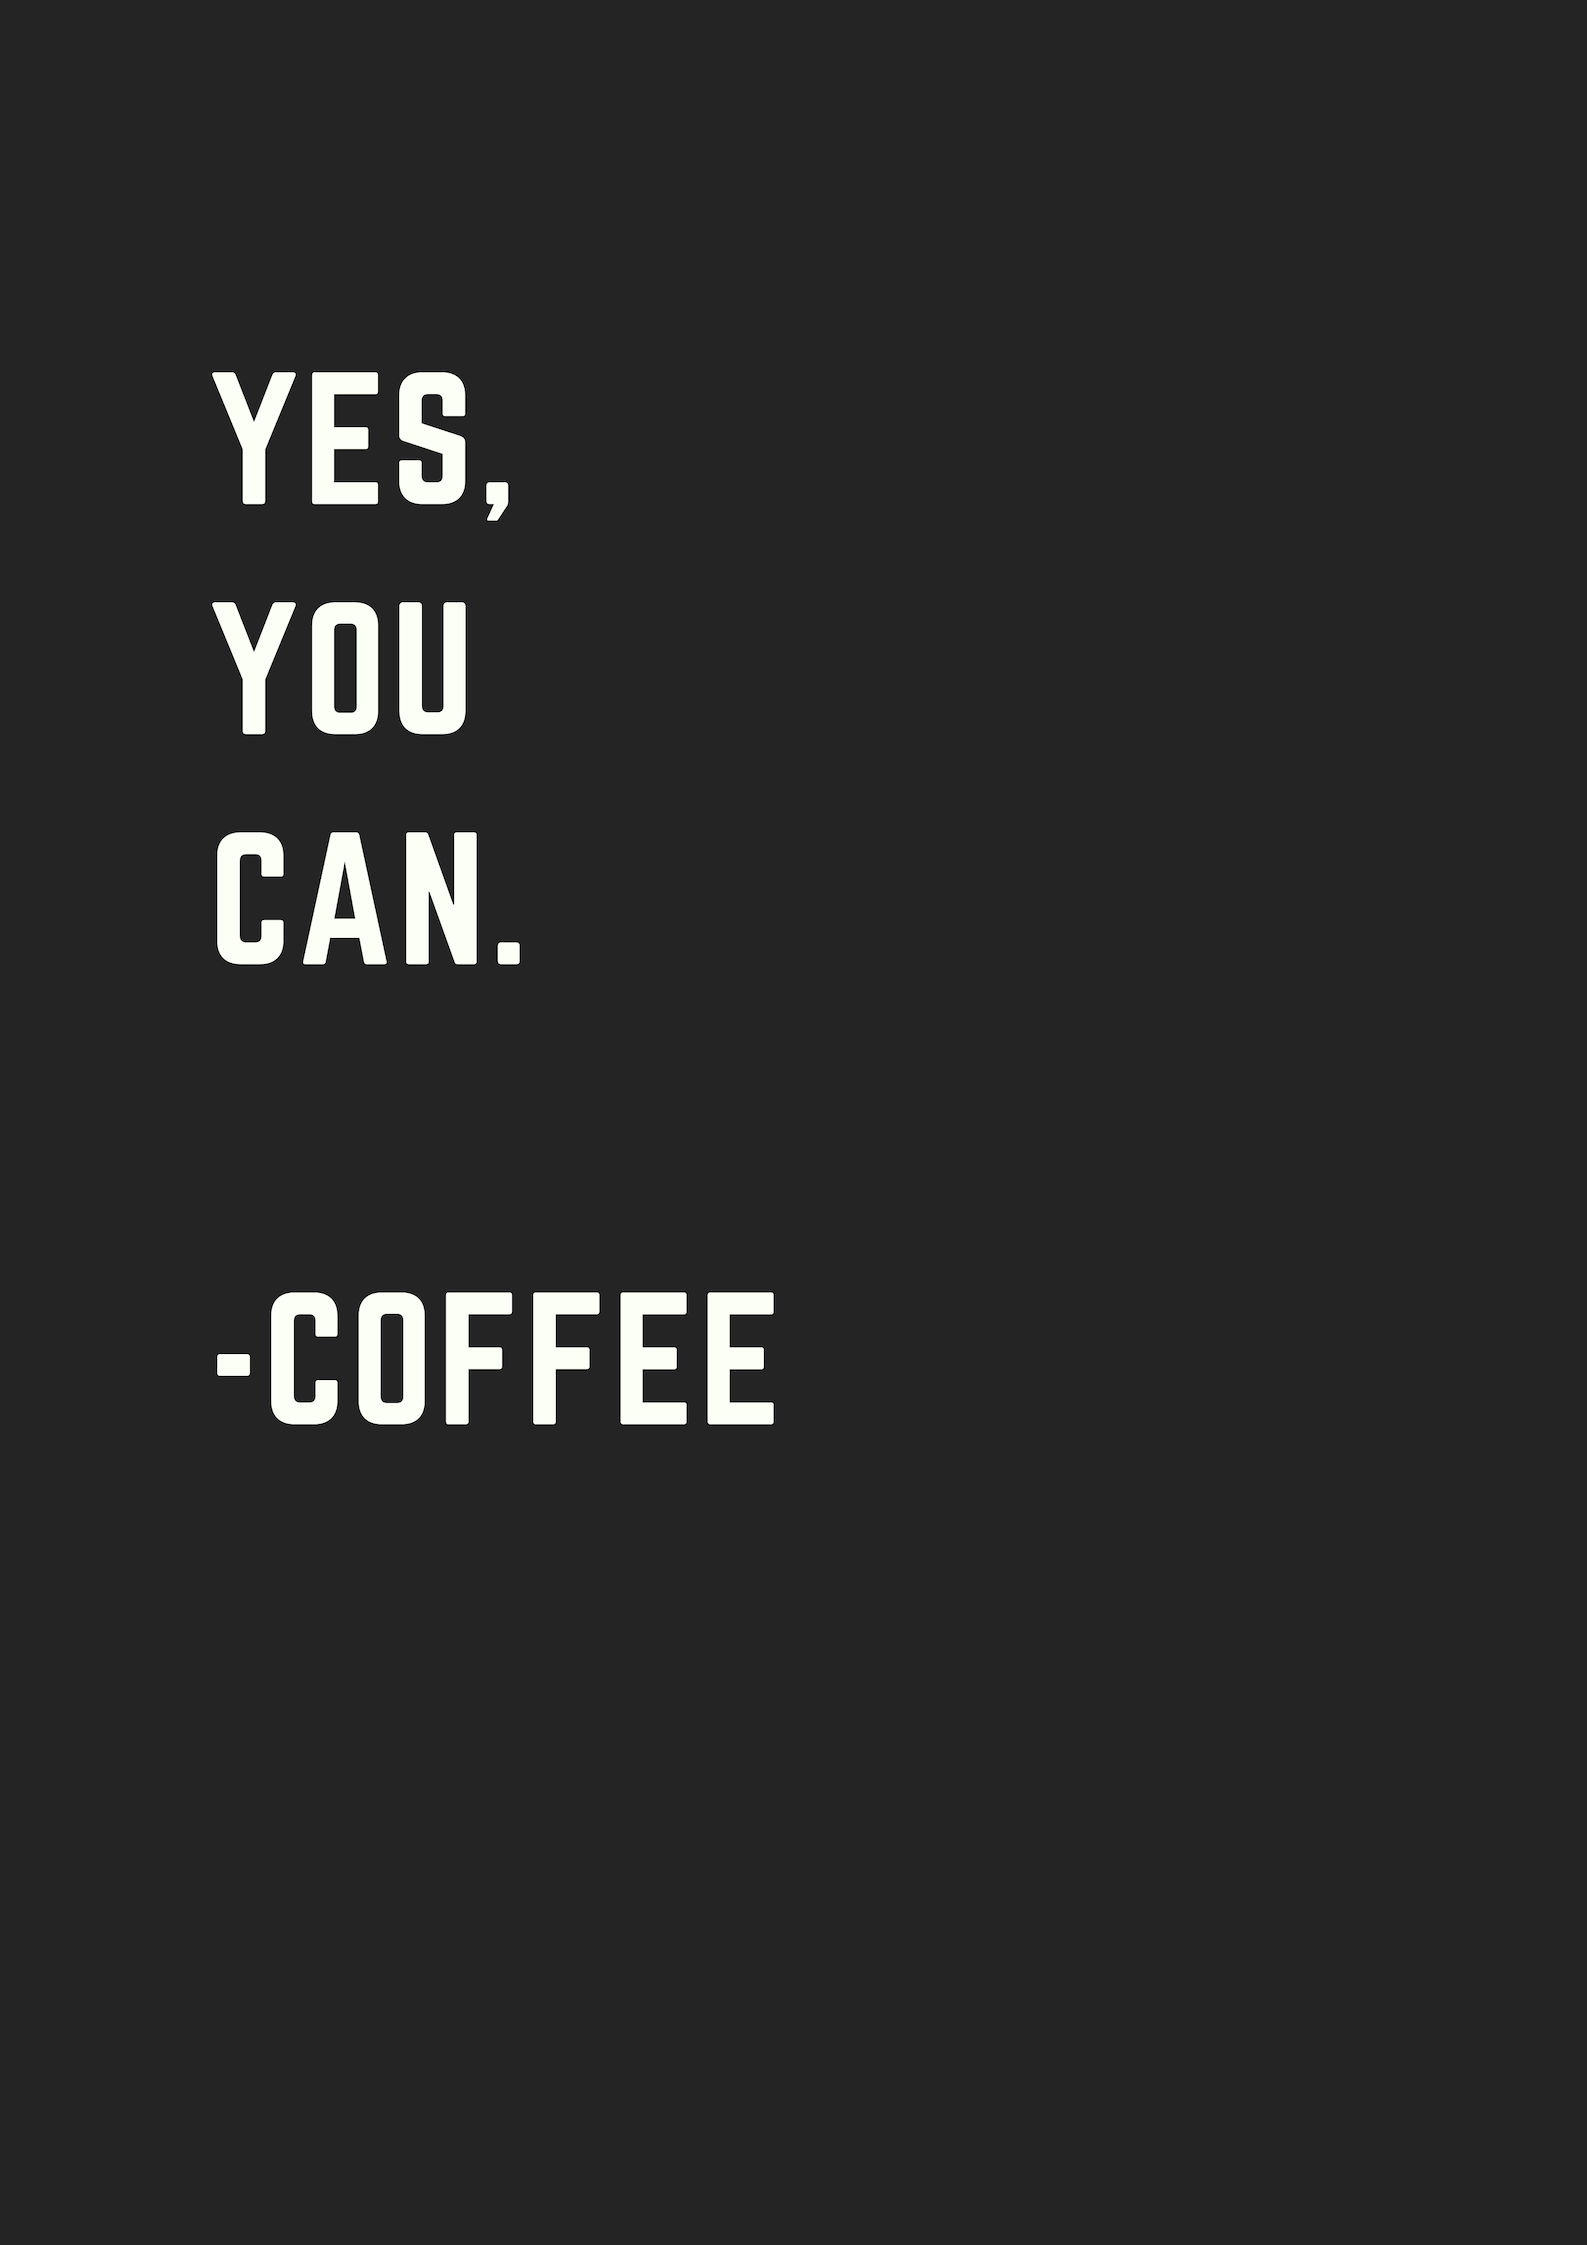 20 More Inspirational Coffee Quotes That Will Boost Your Day Coffee Quotes Funny Coffee Quotes Inspirational Coffee Quotes